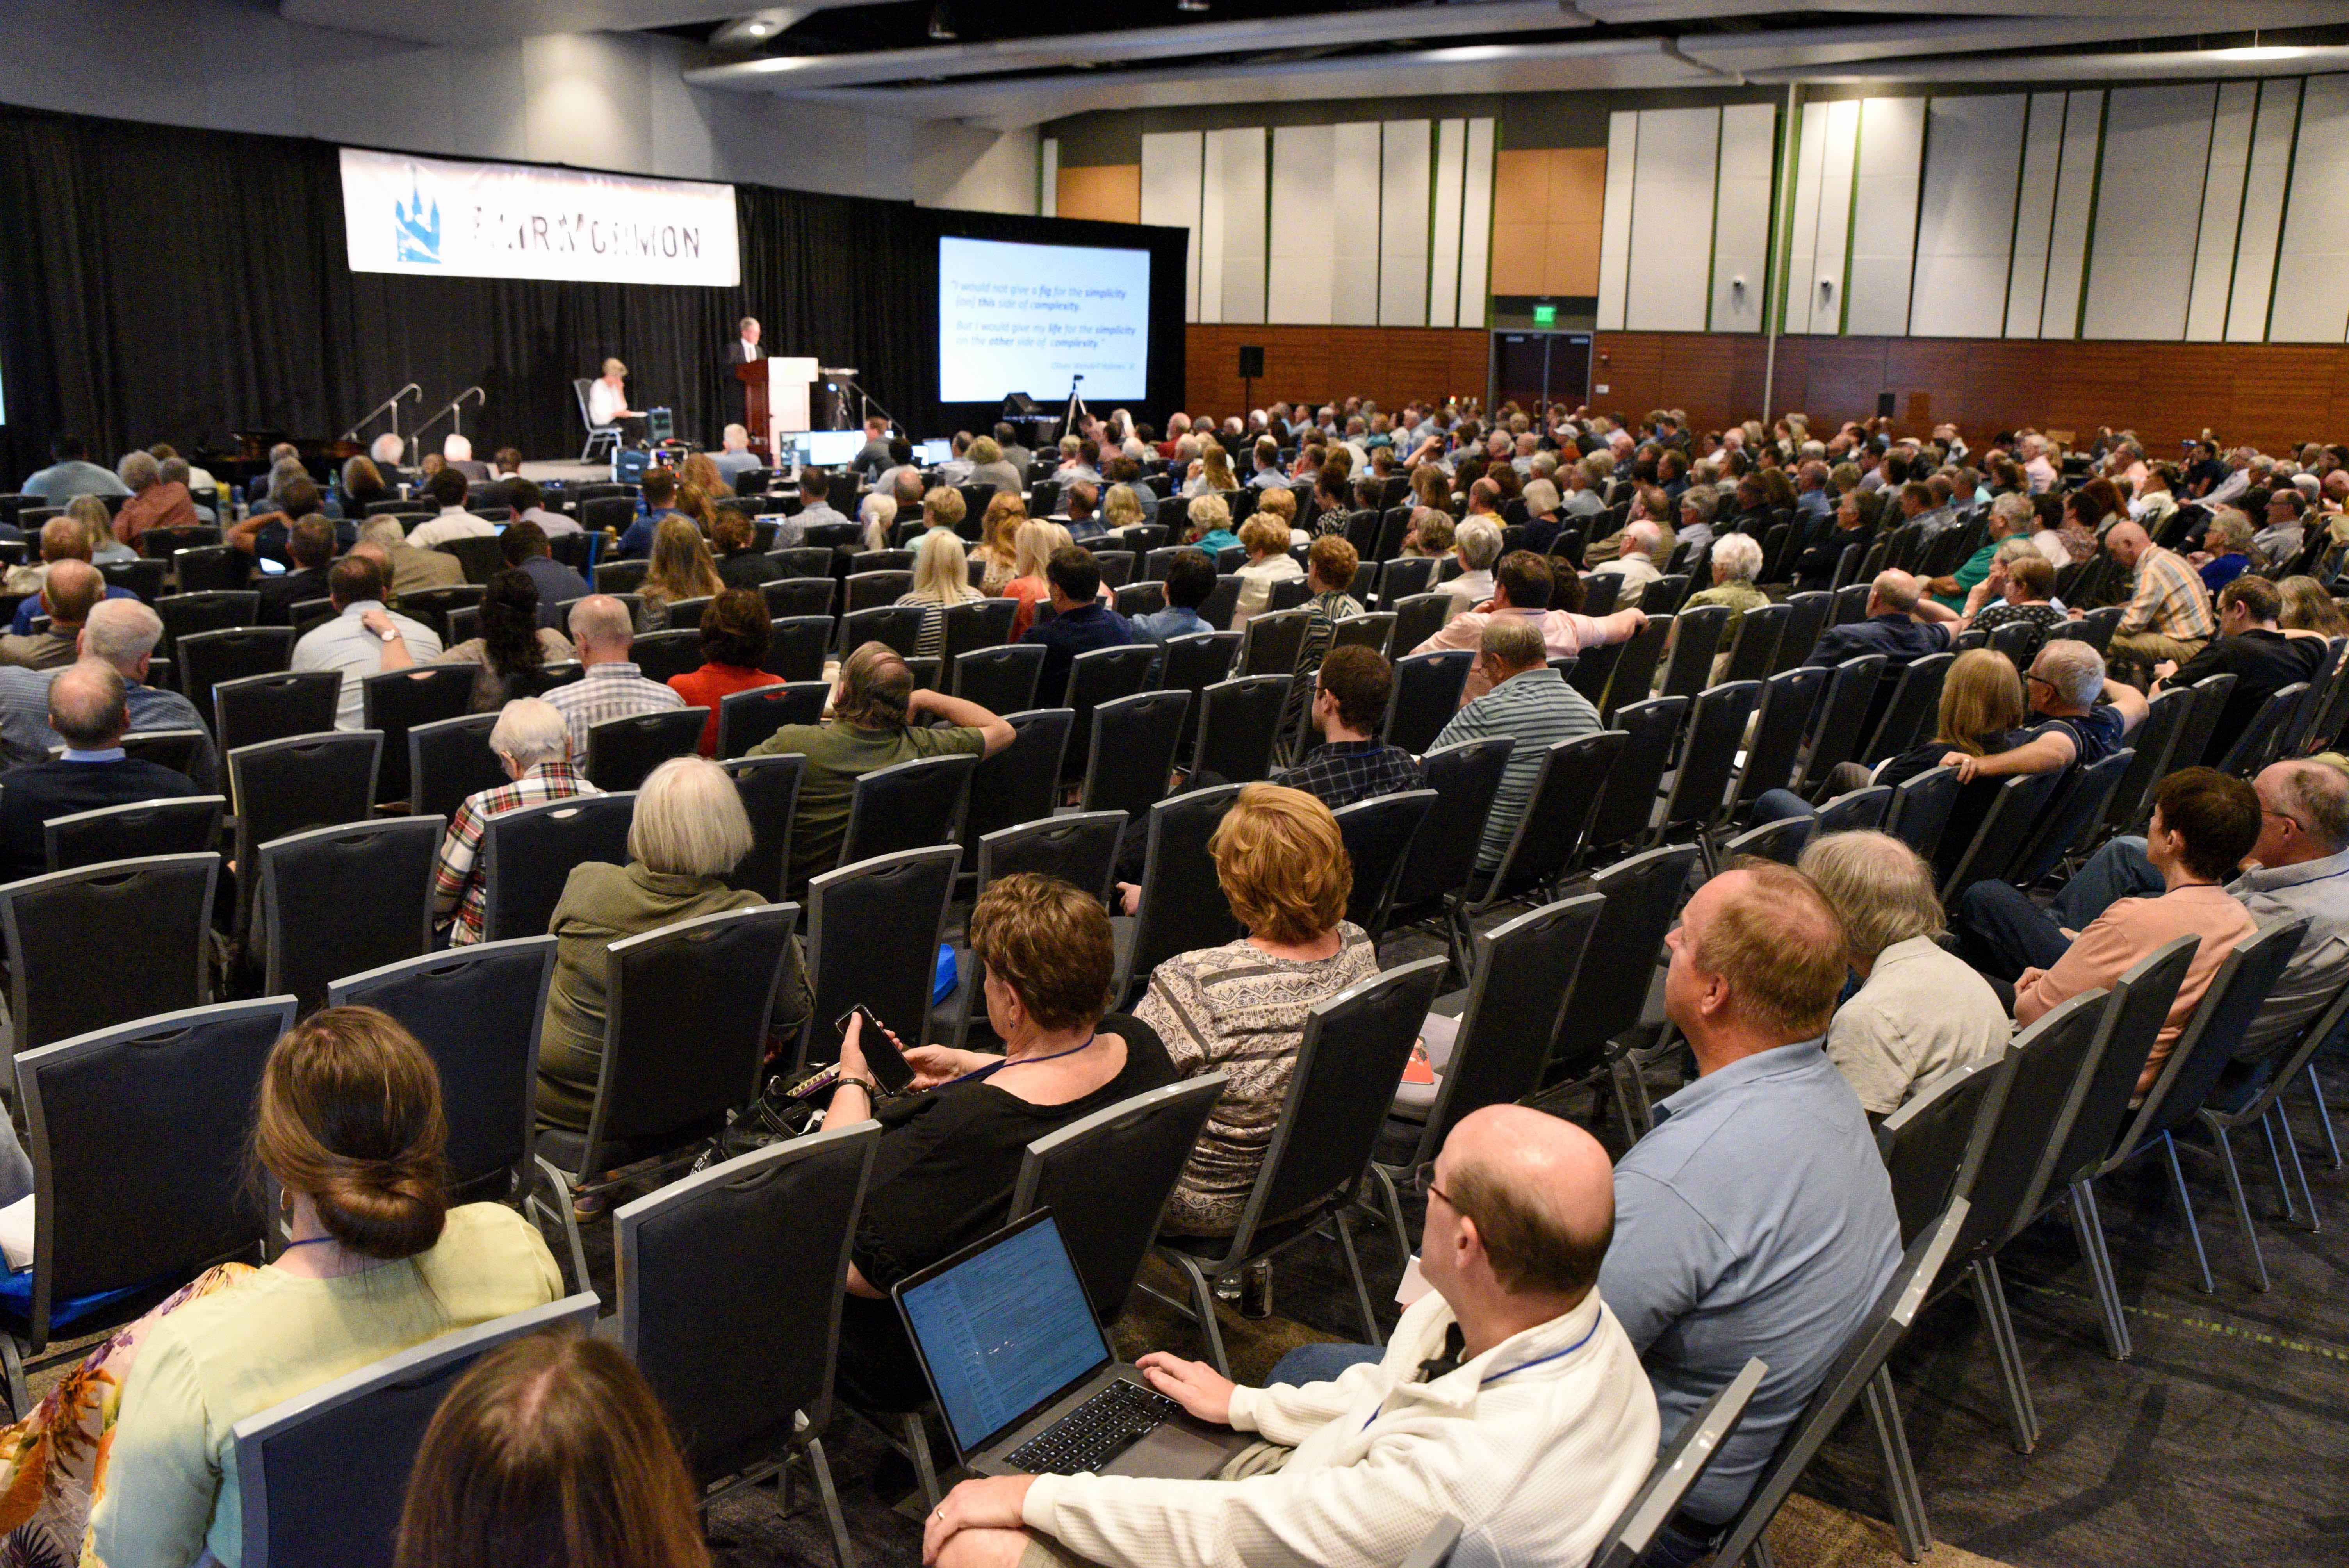 Attendees at the FairMormon conference listen to guest speakers during a conference session on Friday, Aug. 9, 2019 at the Utah Valley Convention Center in Provo, Utah.